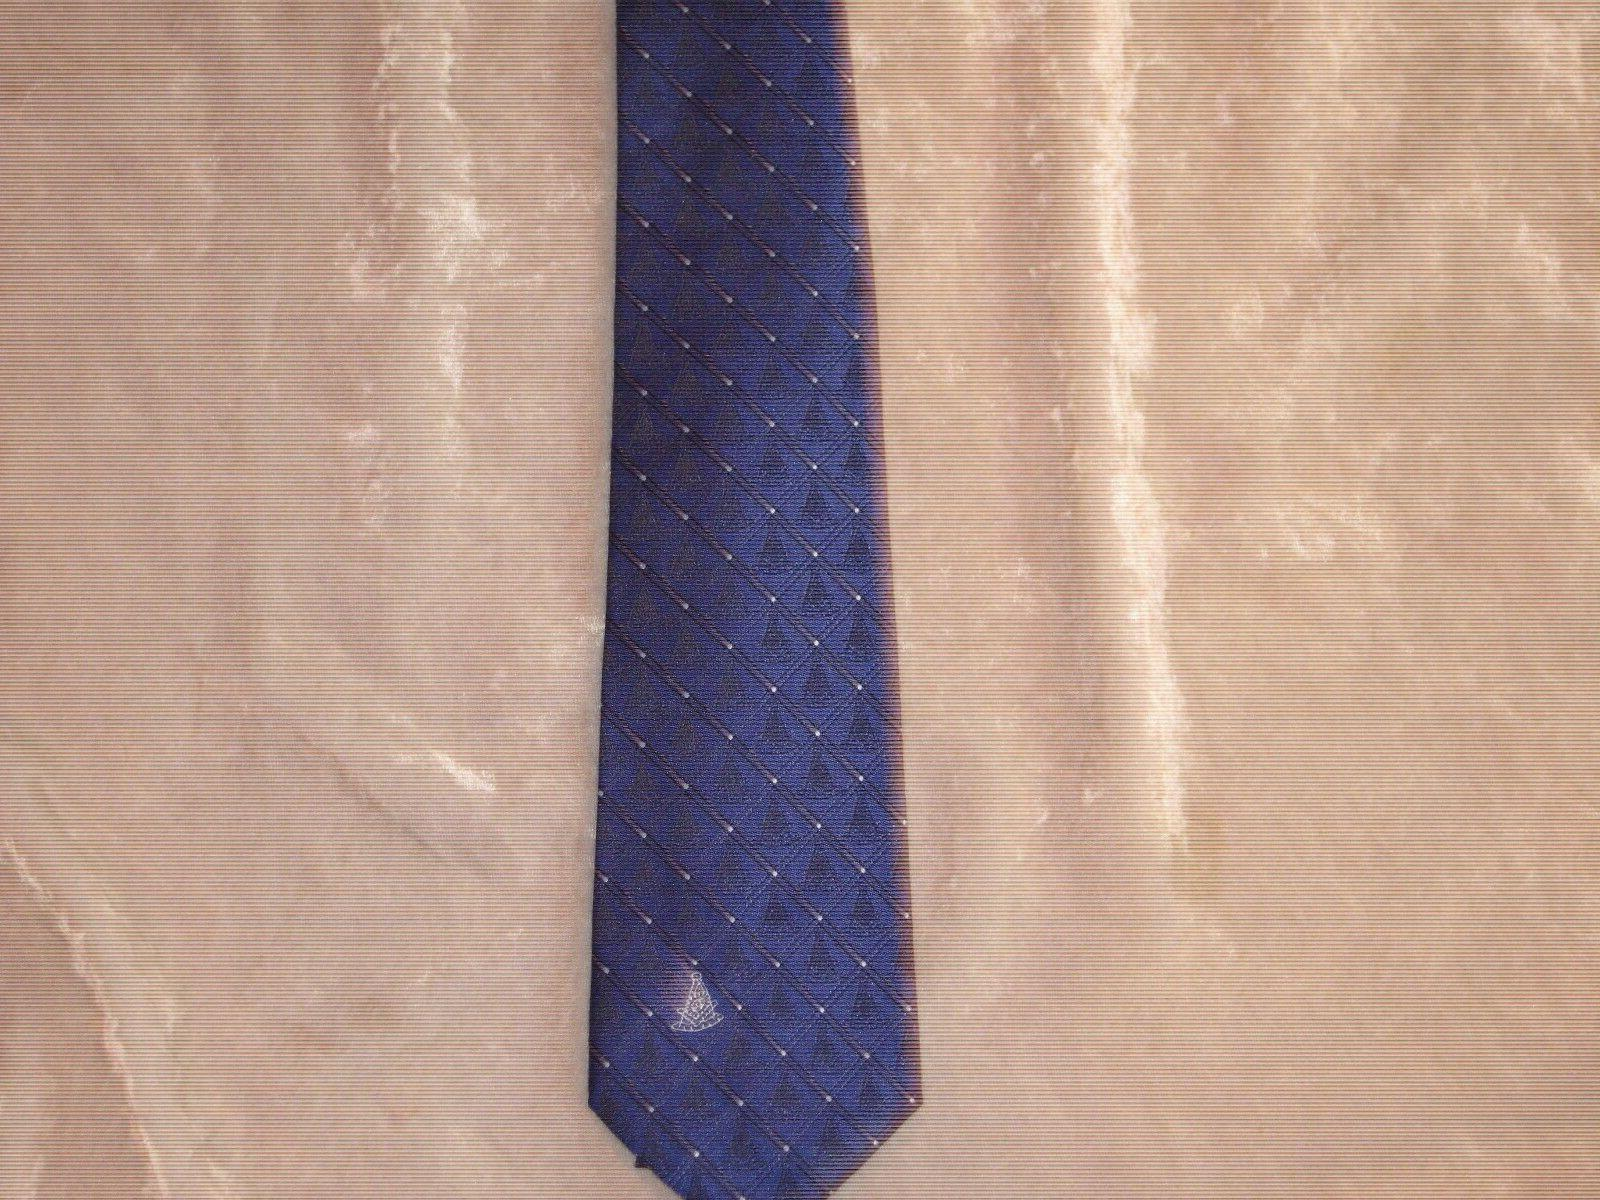 Masonic Past Master Necktie Diamond Fraternity Long